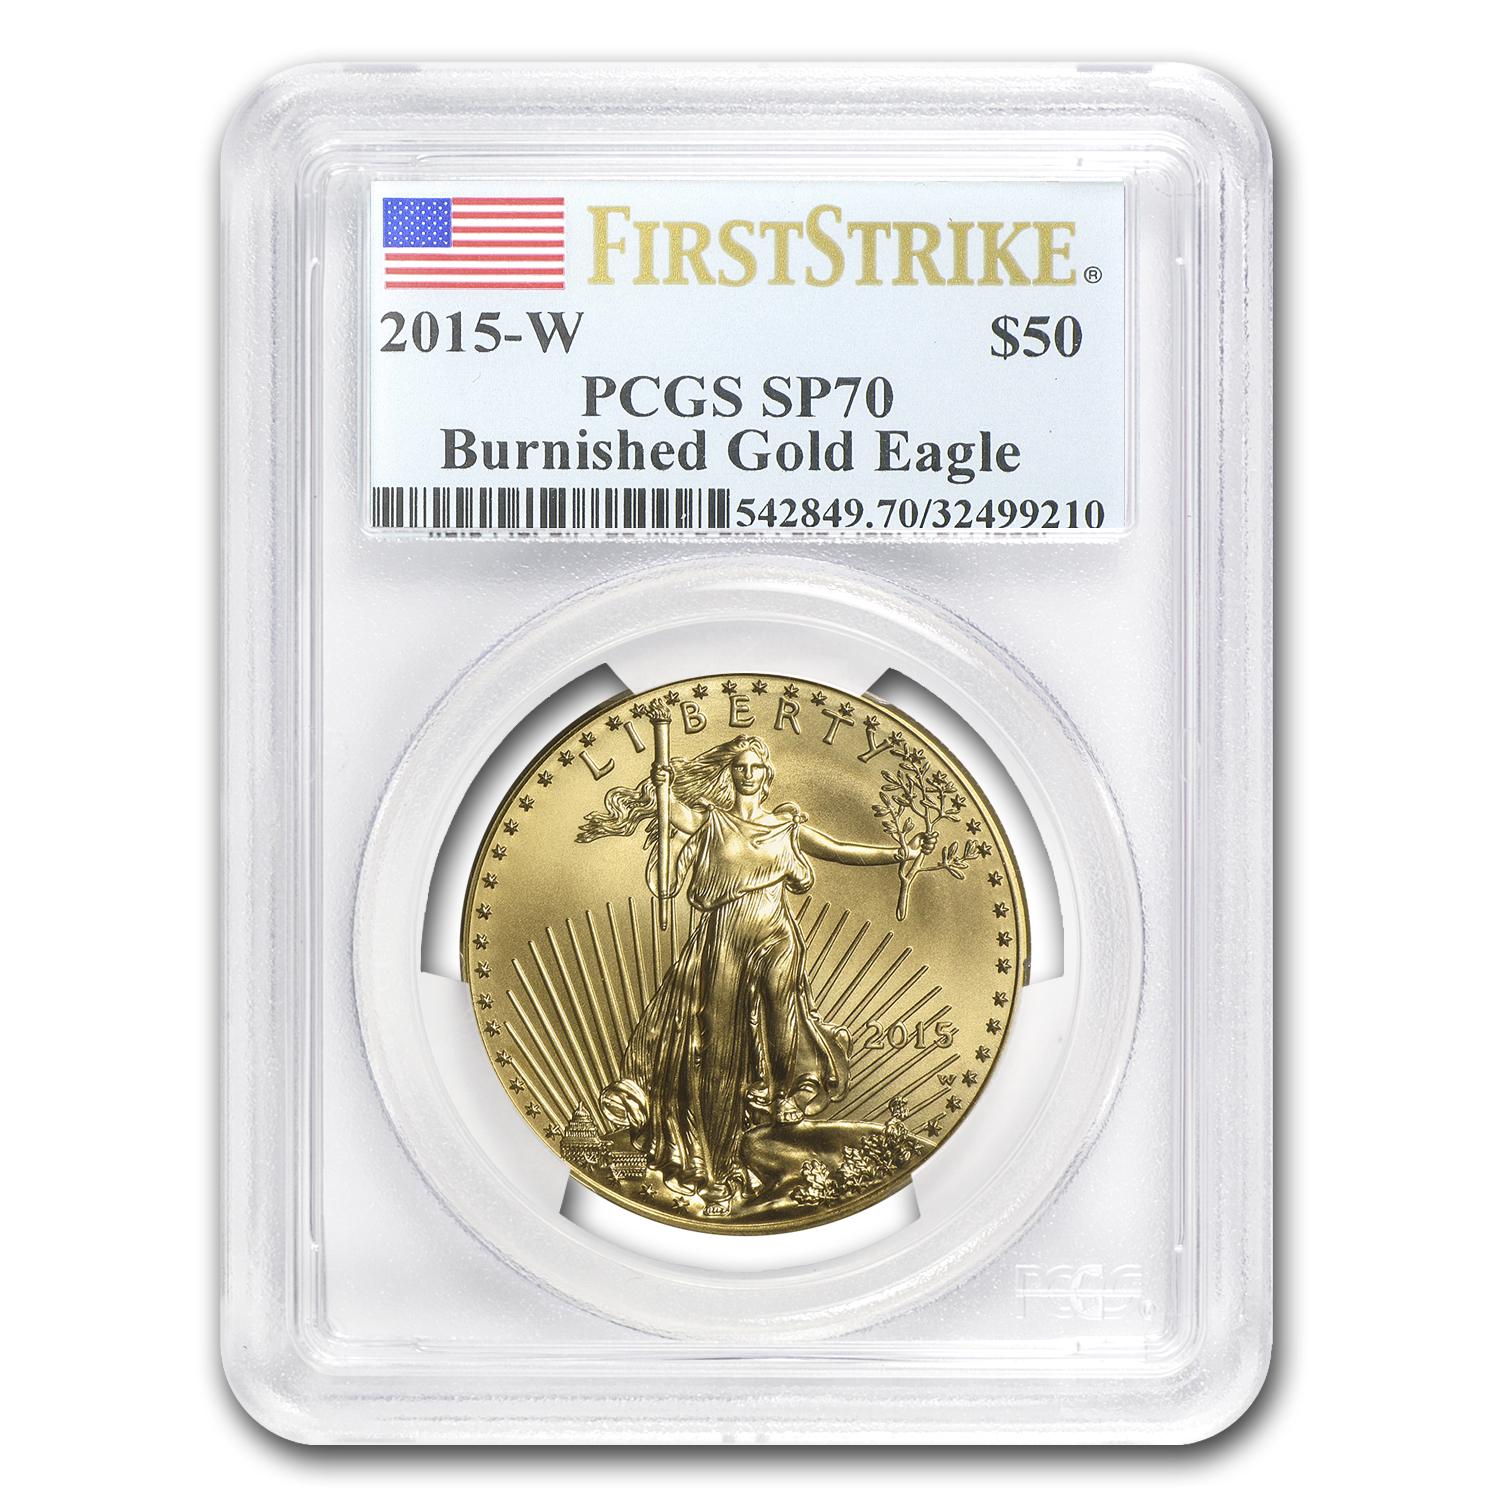 2015-W 1 oz Burnished Gold Eagle SP-70 PCGS (First Strike)